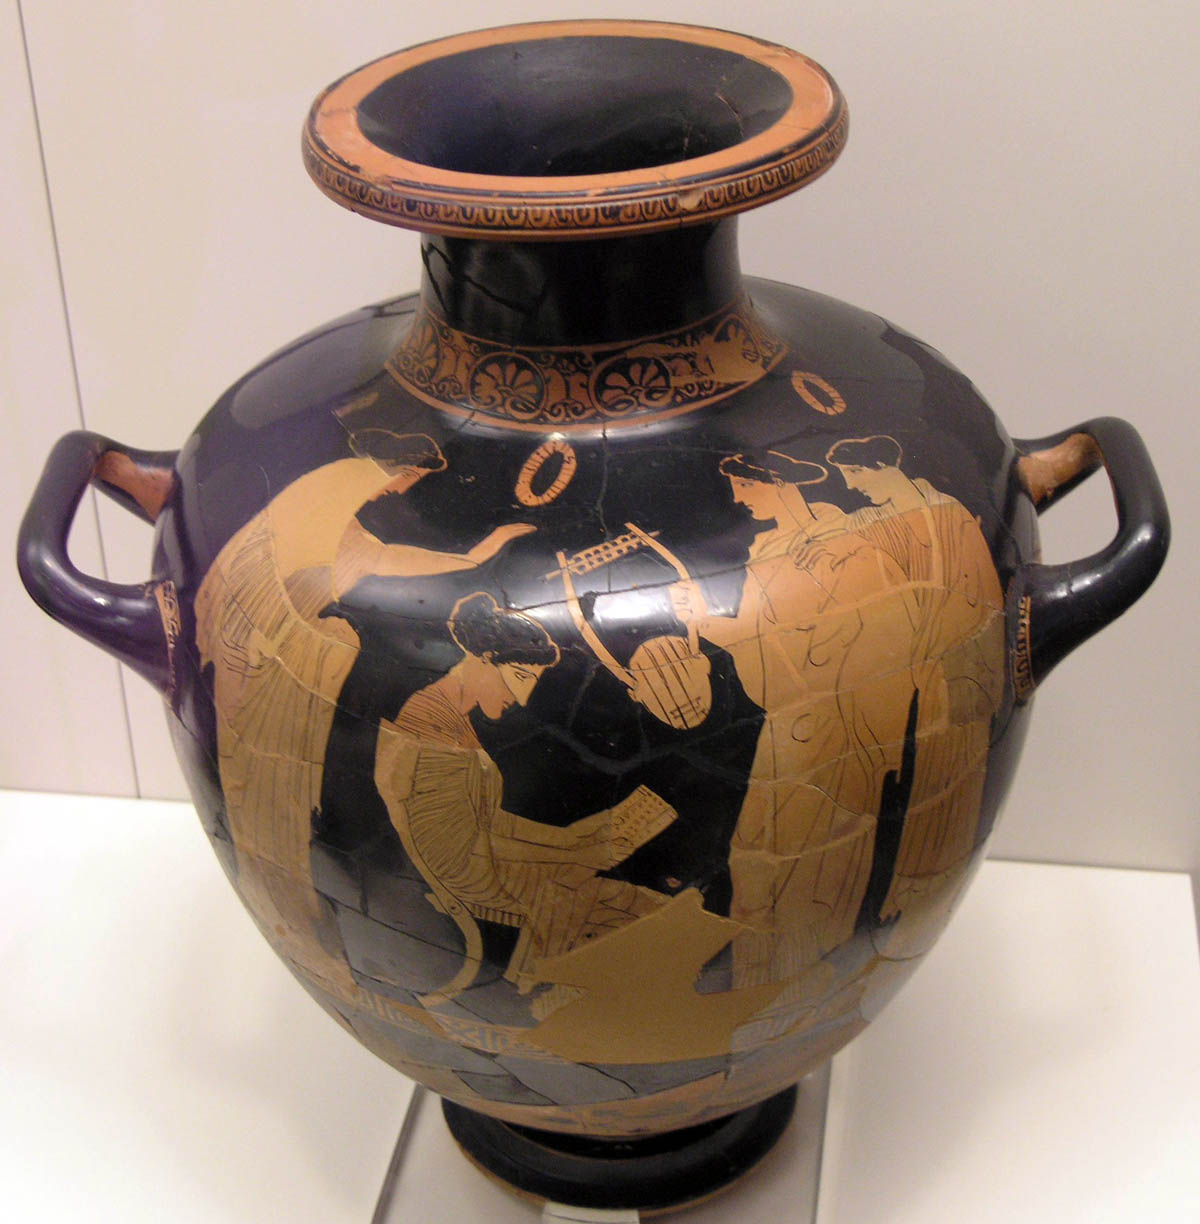 Sappho inspired ancient poets and artists, including the vase painter from the Group of Polygnotos who depicted her on this red-figure hydria.